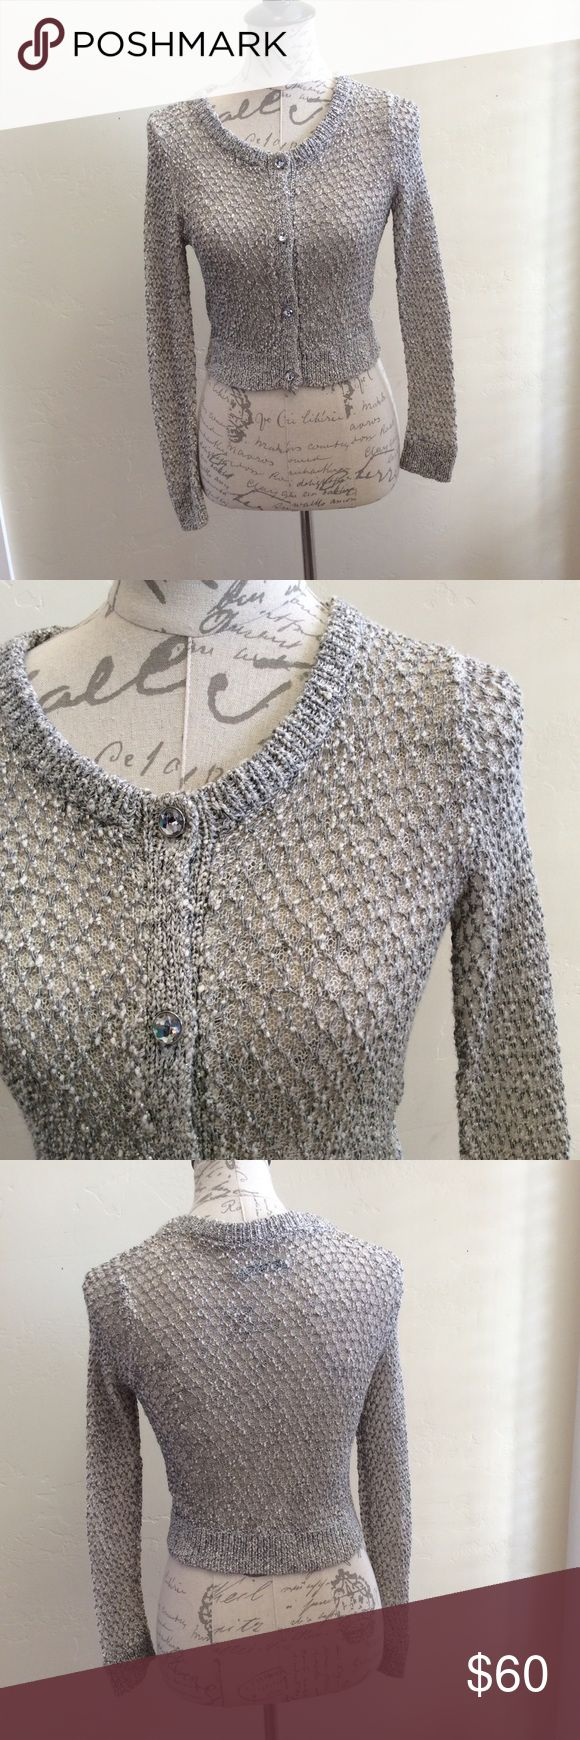 Alice + Olivia Silver Cardigan This silver Alice + Olivia button up Cardigan is perfect to add a little sparkle to your holiday wardrobe. It is waist length and features rhinestone buttons. So cute! Size S Alice + Olivia Sweaters Cardigans